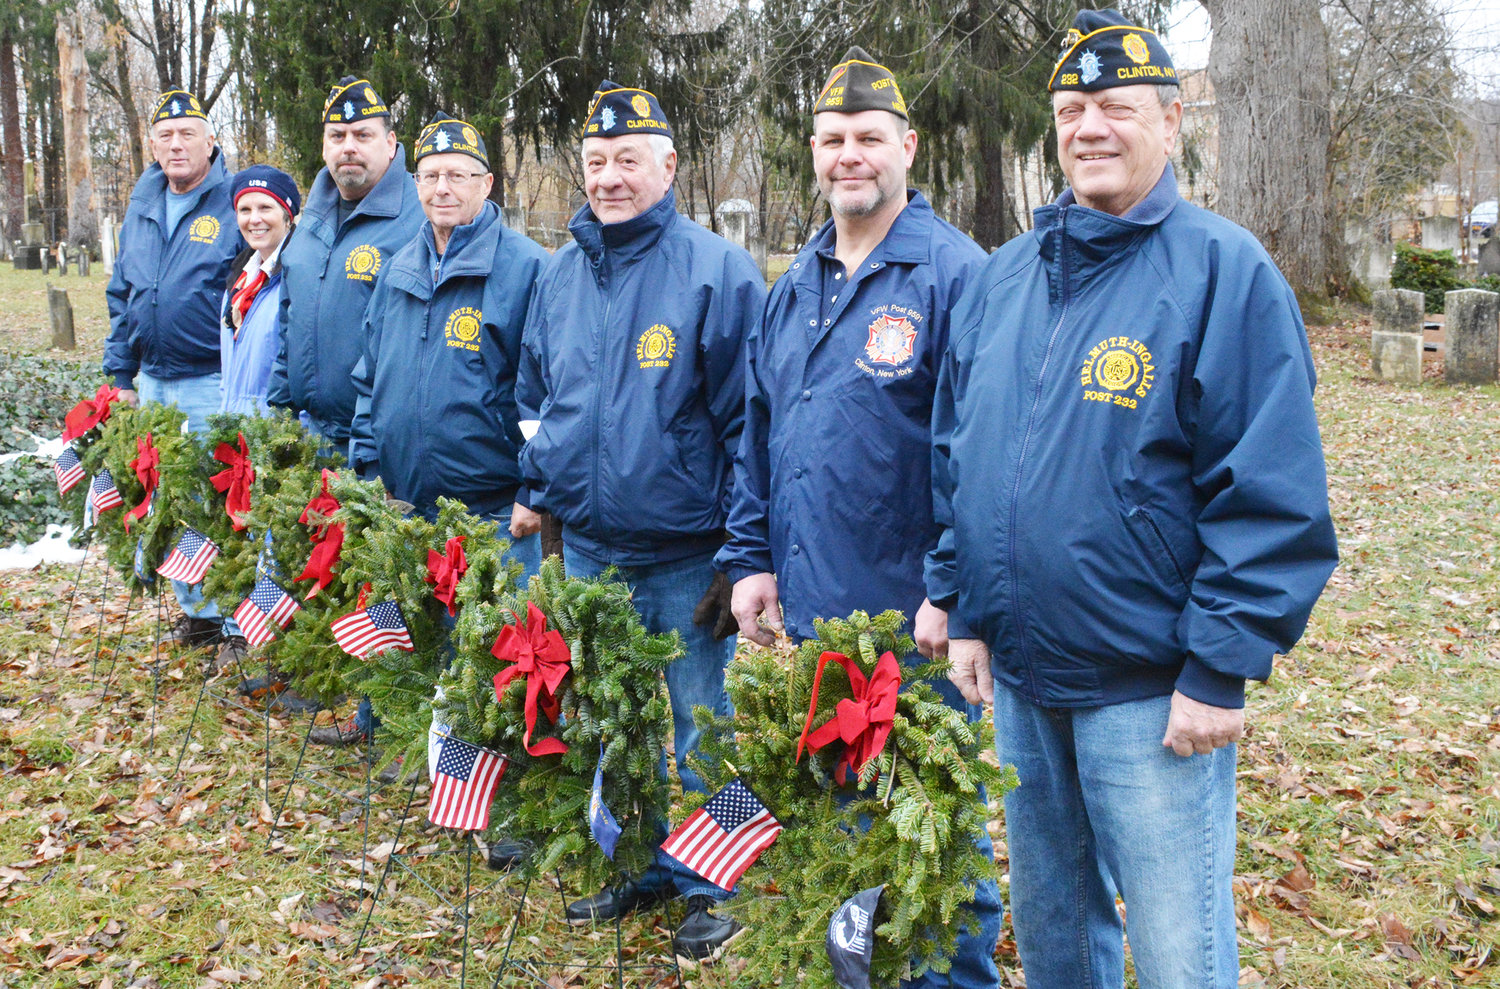 DUTY AND HONOR — Members of the American Legion Helmuth-Ingalls Post 232 and Skenandoah Chapter of the DAR participated in the Wreaths Across America memorial at the Old Burial Ground in the Village of Clinton on Saturday, Dec. 14. Pictured from the left: Bill White, Kimberly Haley, John Nolan, Kern Shilkret, Frank Savino, Chet Stuttler and Commander George Reschetnikow.